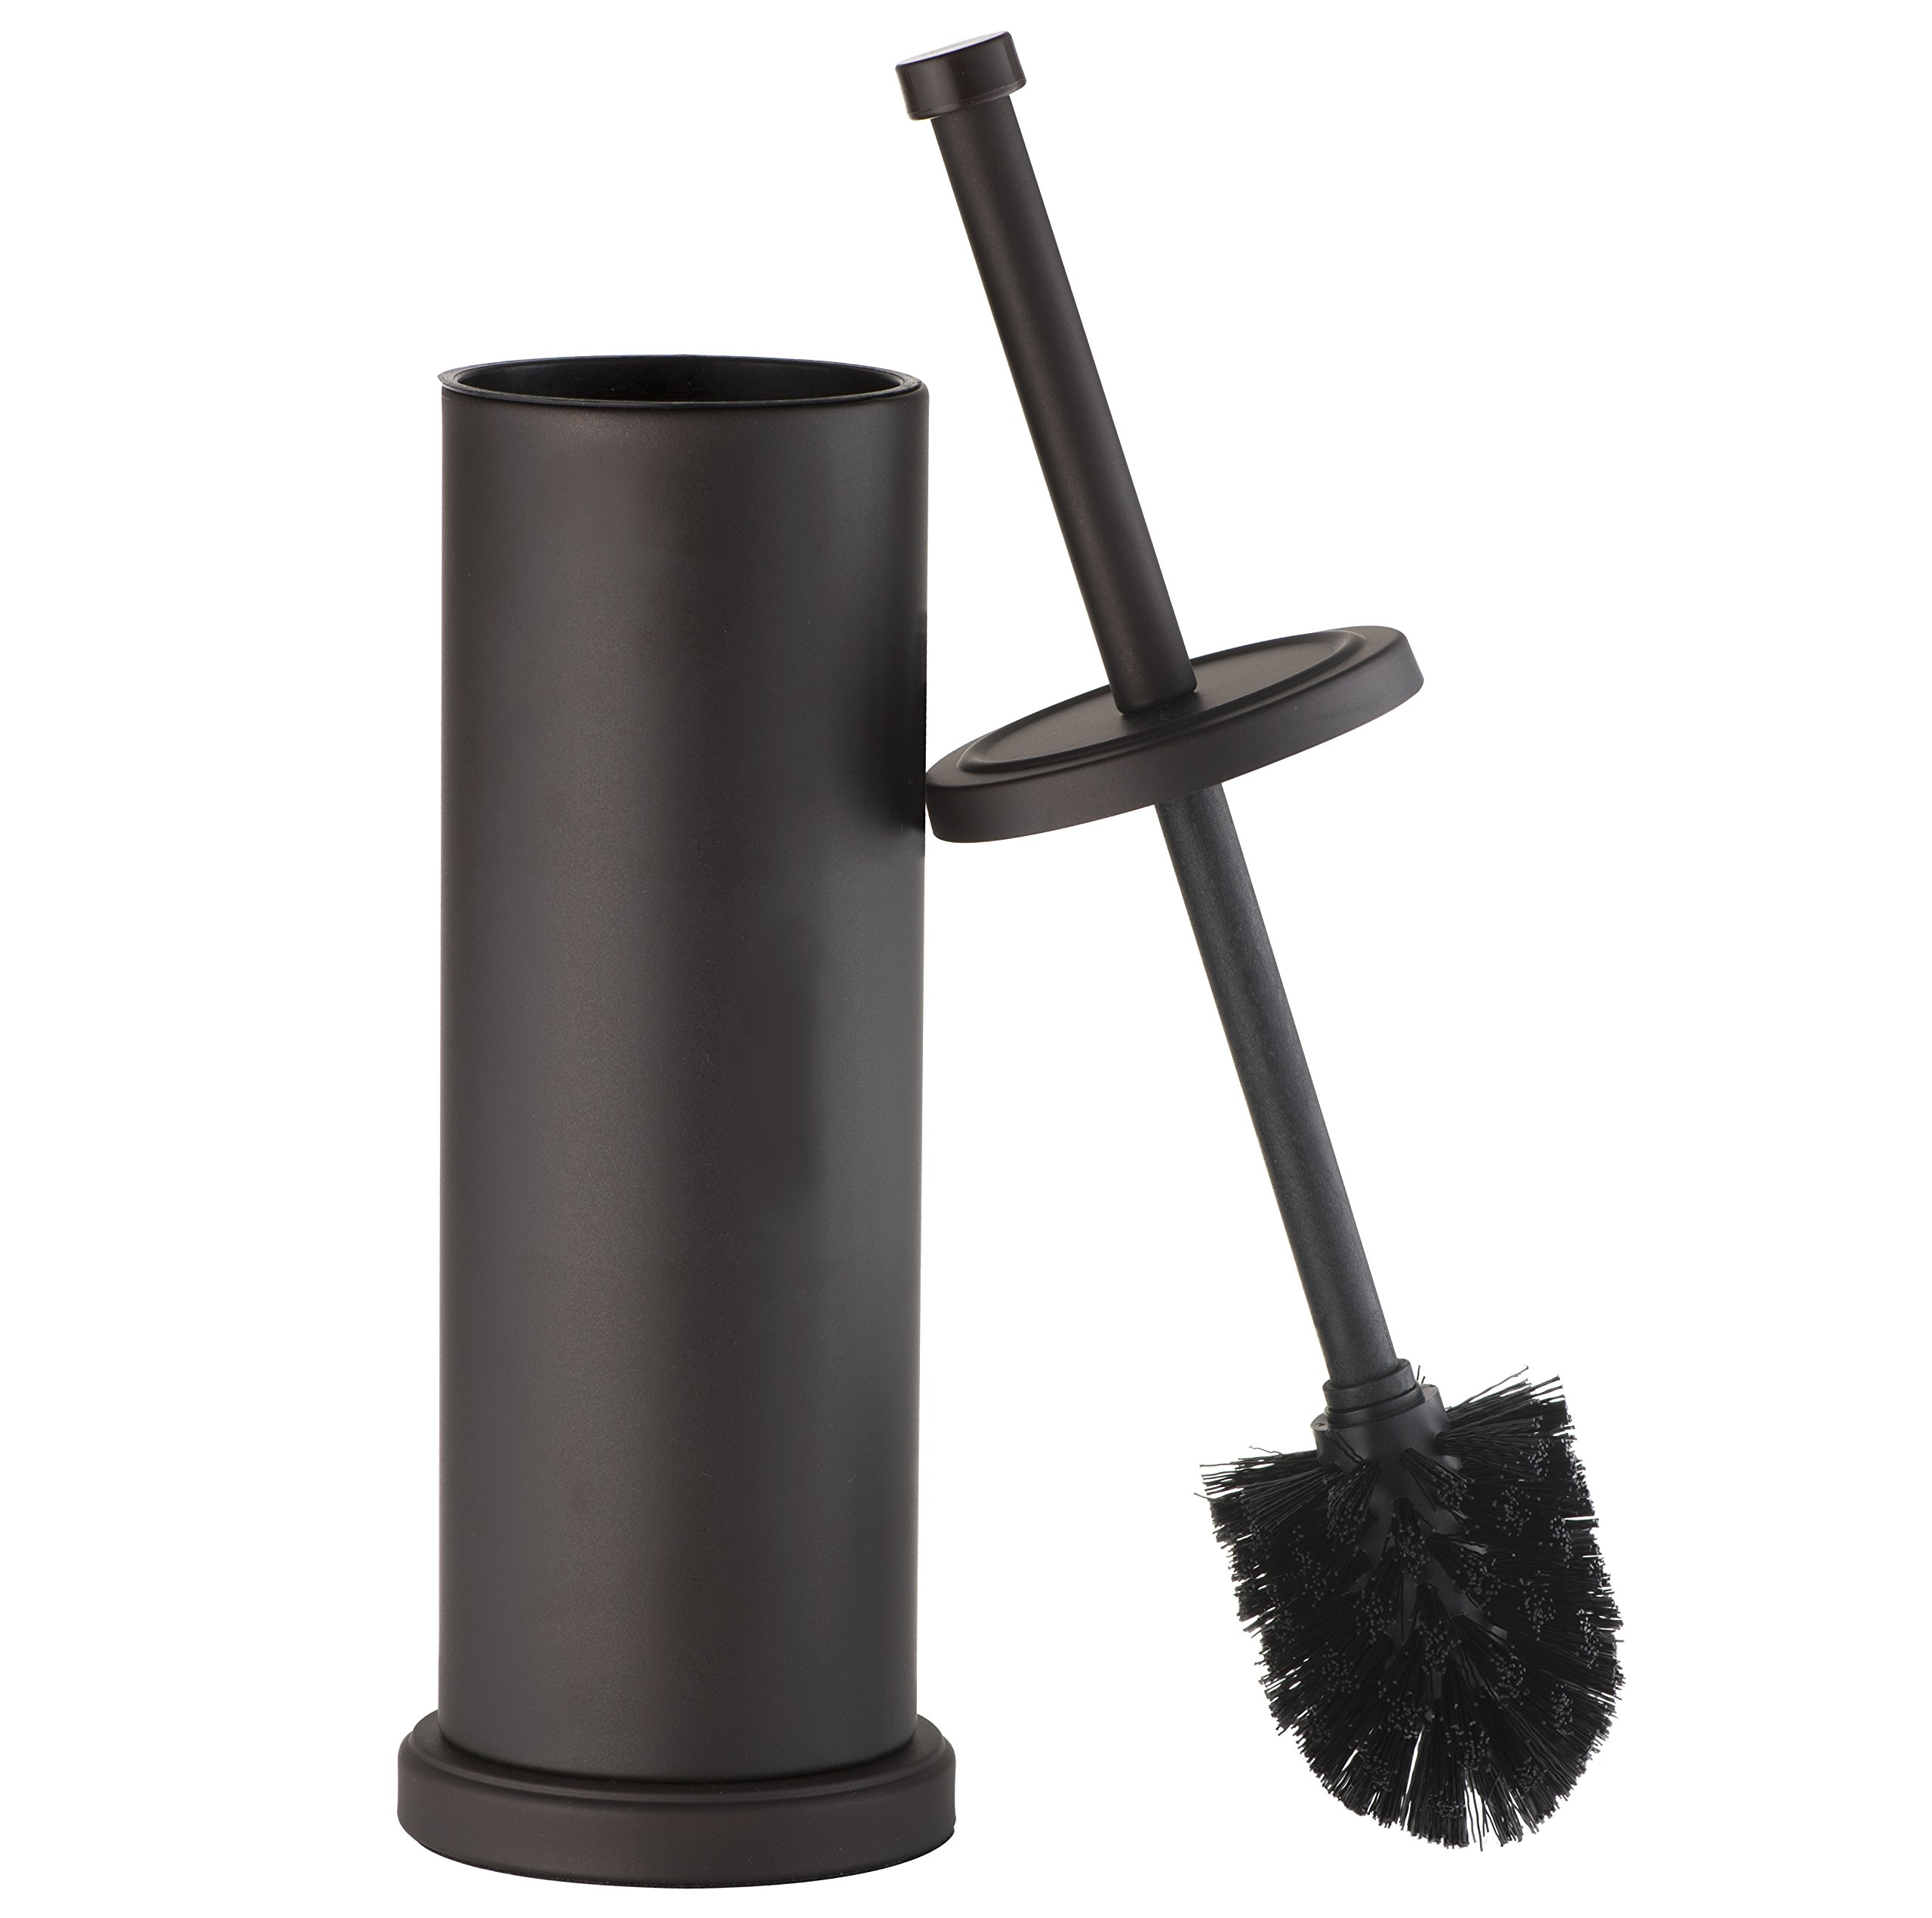 AMG and Enchante Accessories, Toilet Brush and Holder, TB113A ORB, Oil Rubbed Bronze